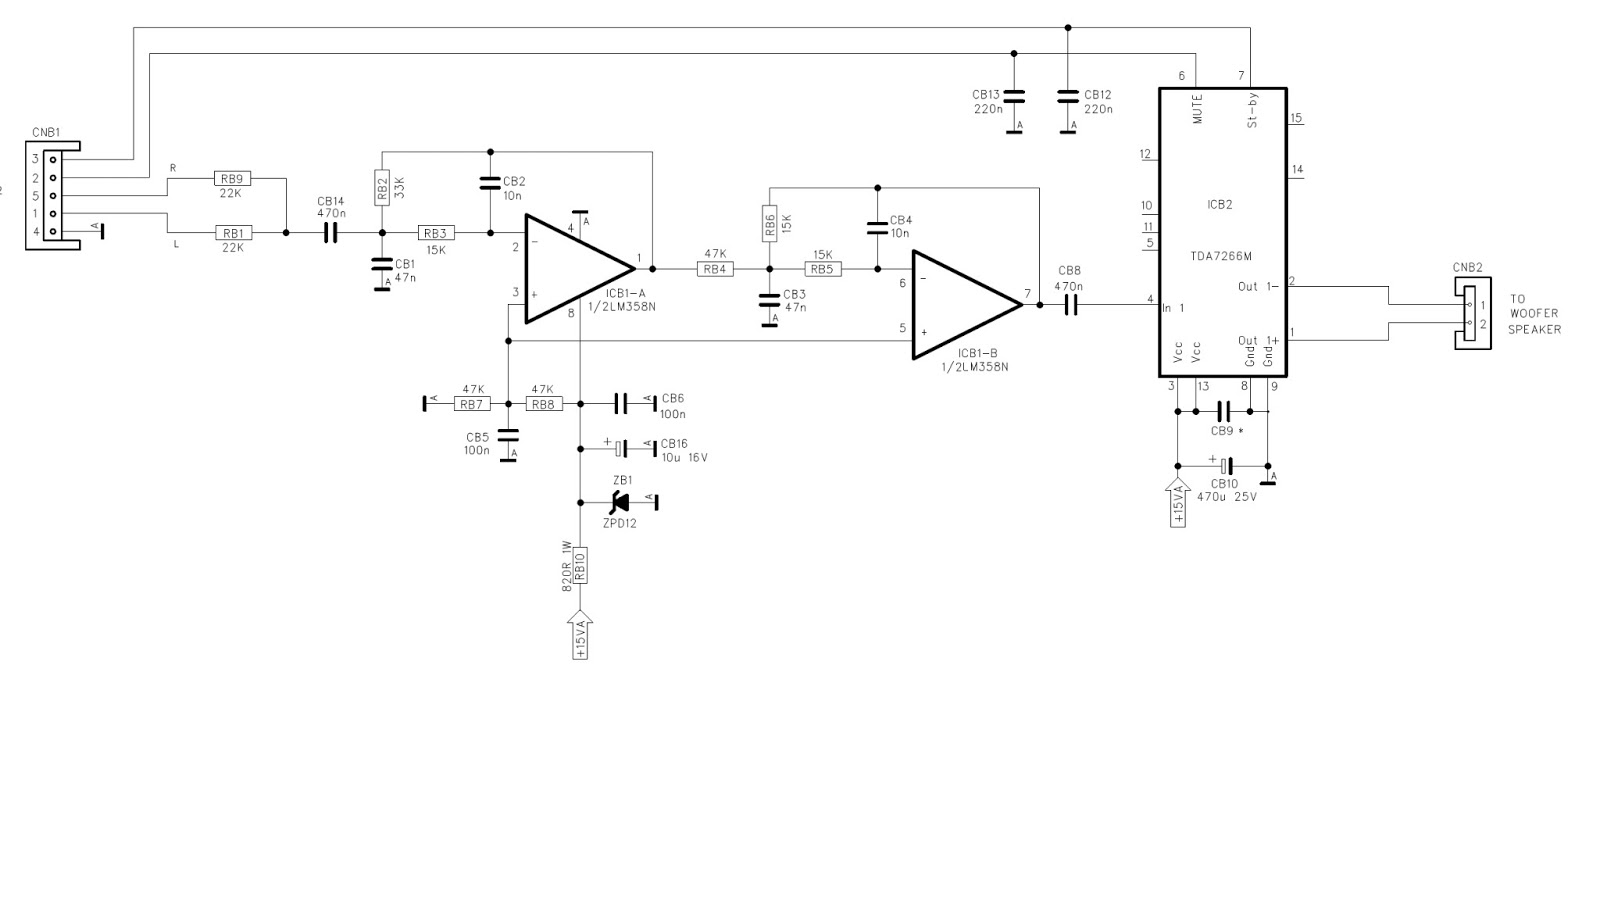 small resolution of lm358n amplifier circuit woofer amplifier circuit diagram sub woofer circuit woofer circuit diagram electro magnet diagram